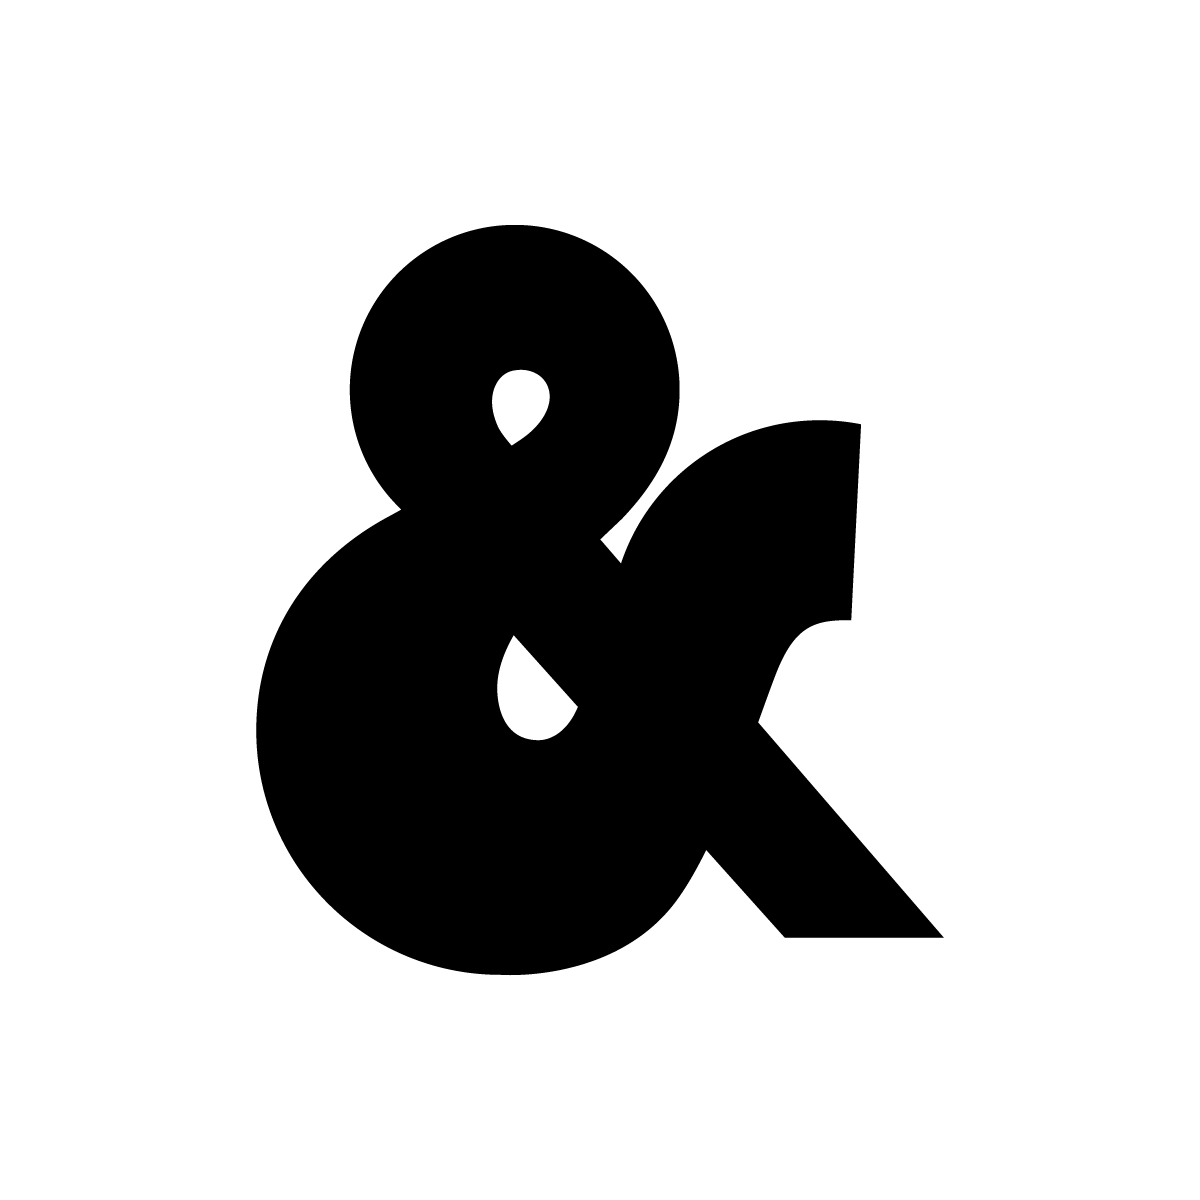 HD_Ampersand-63